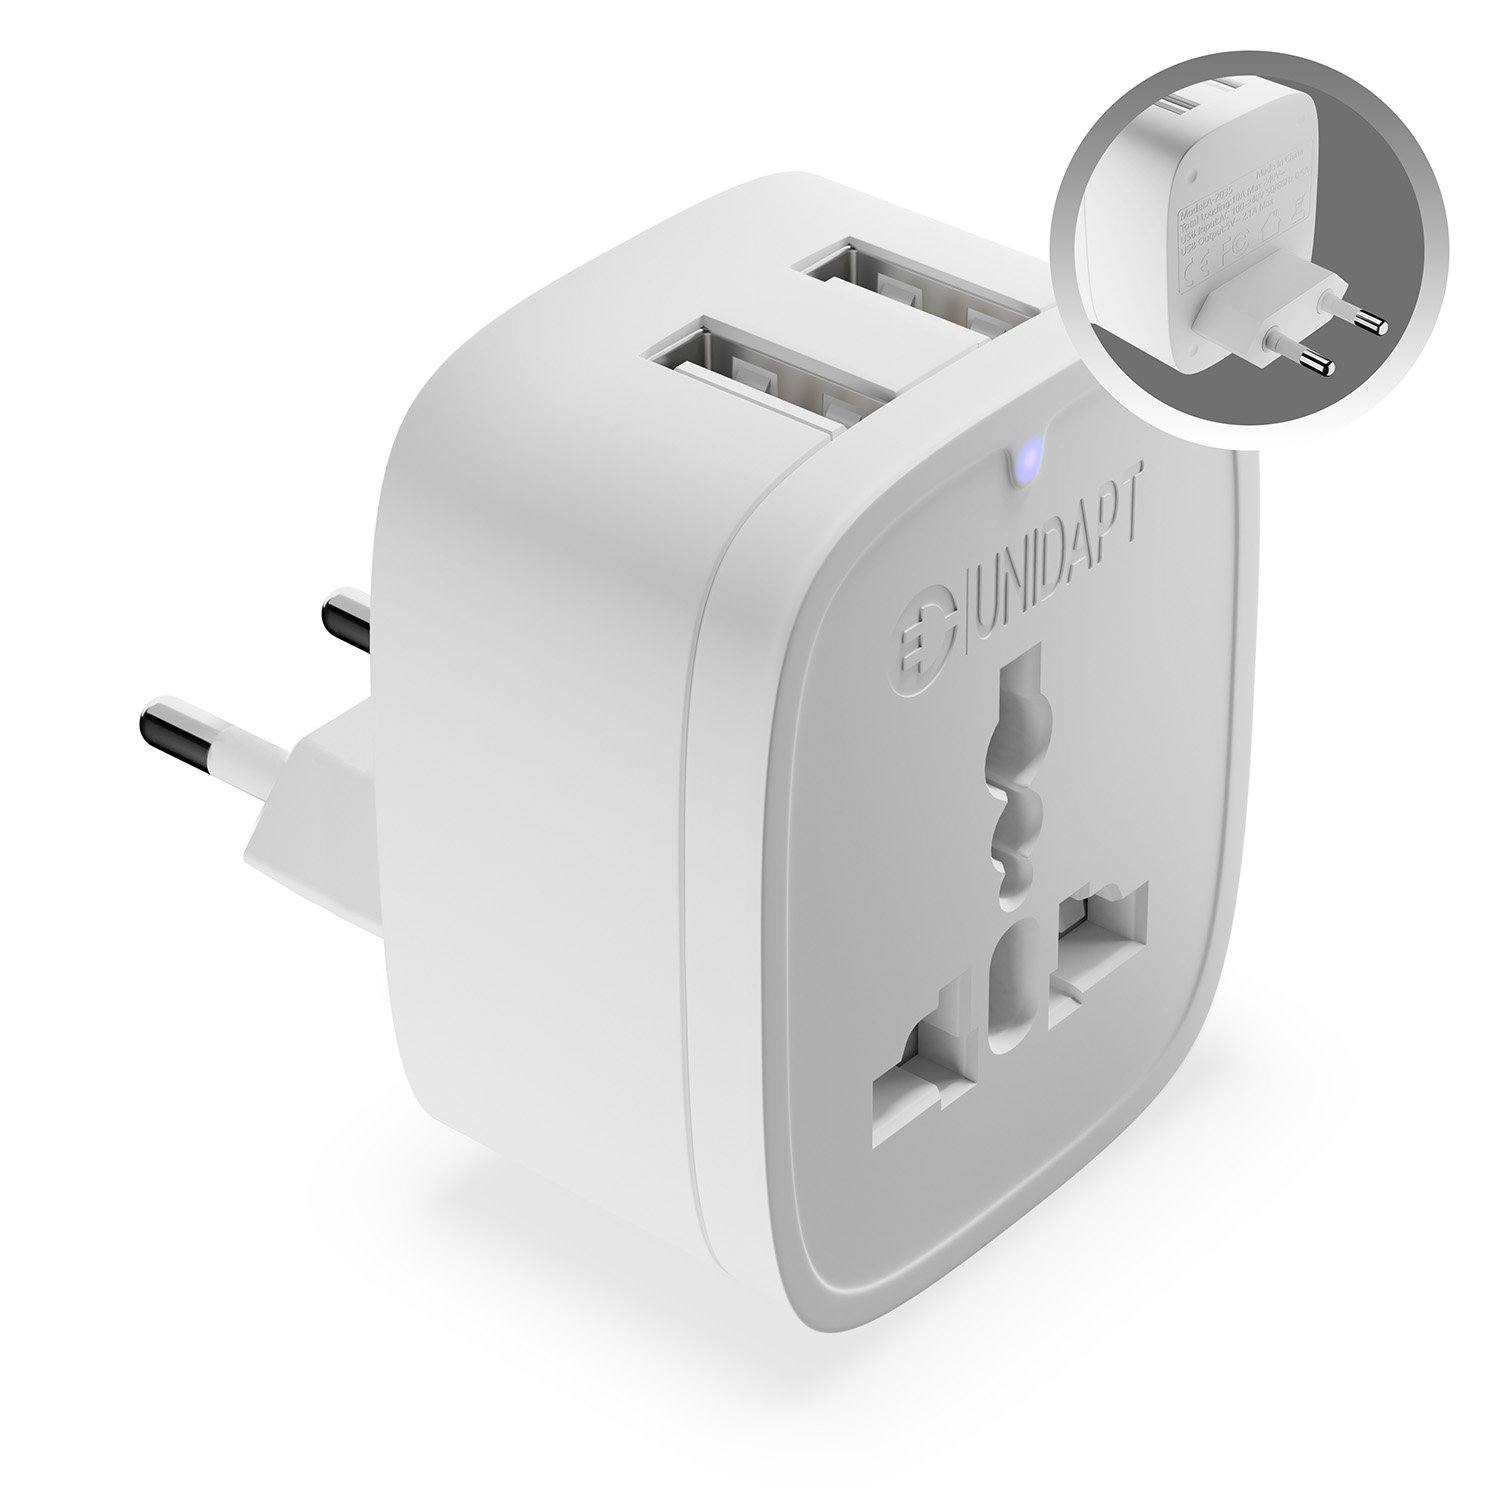 Unidapt European Type C Adapter – World to Europe – 3 in 1 International Power Plug with 2 USB & AC- Universal Input Adapter that works in most of EU, Germany, Spain, Italy (Type C)